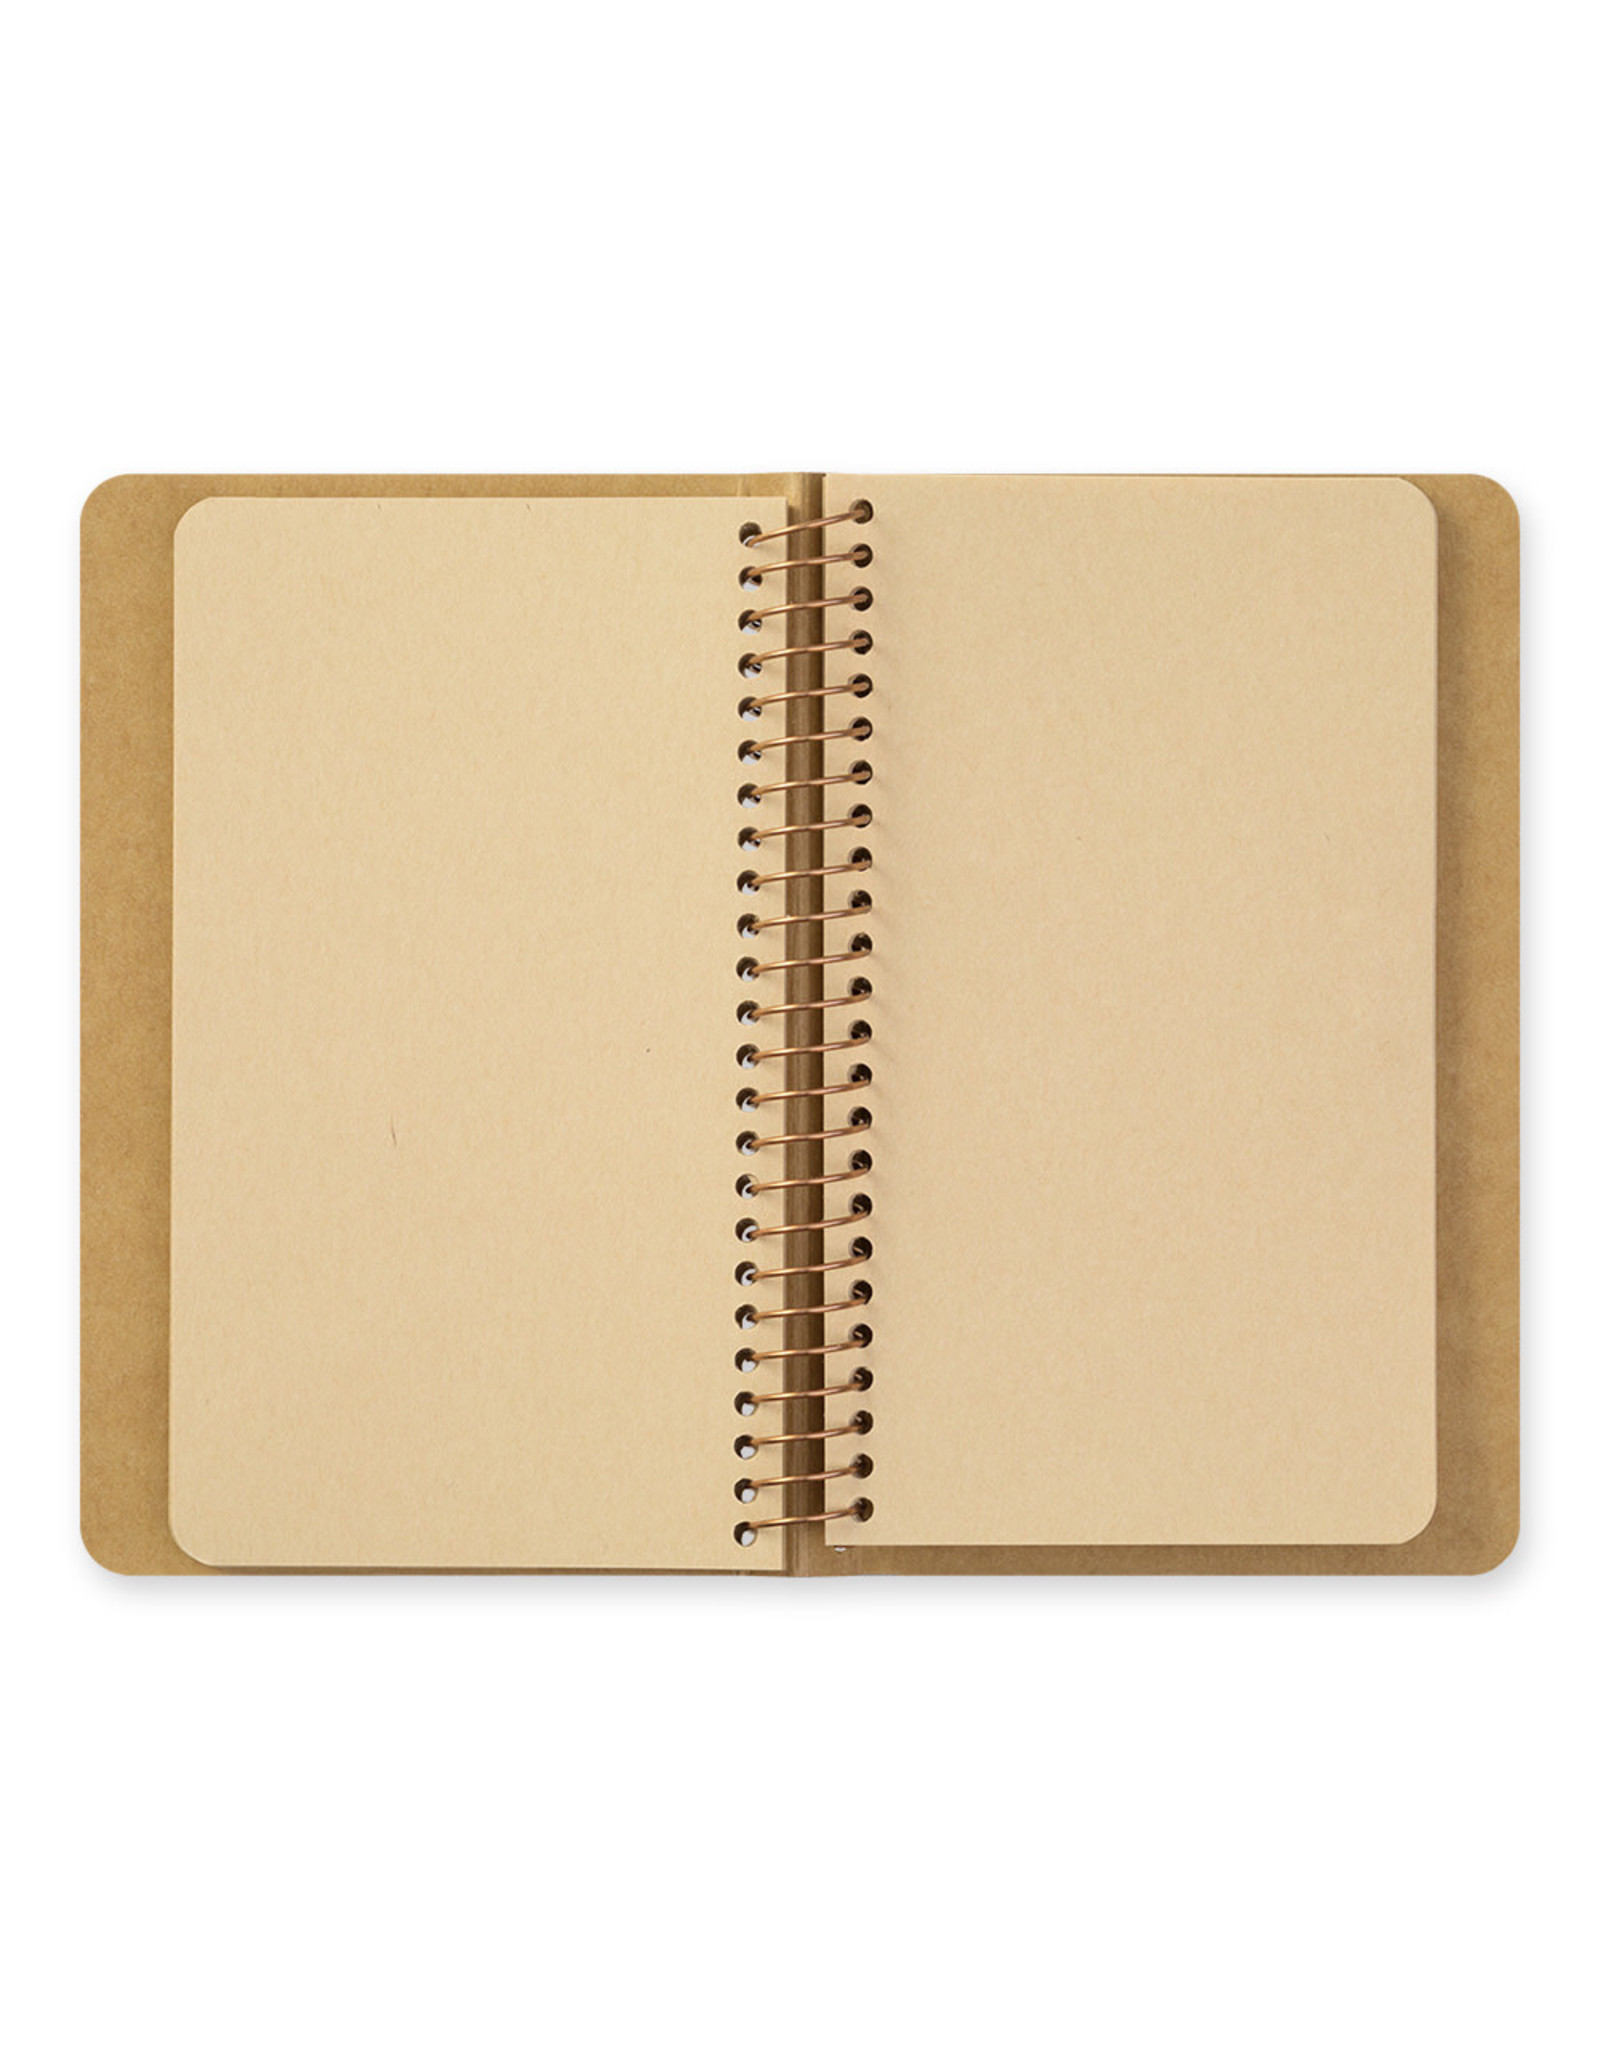 Traveler's Company SPIRAL RING NOTEBOOK A6 SLIM BLANK DW KRAFT PAPER 80 SHEETS (160 PAGES)